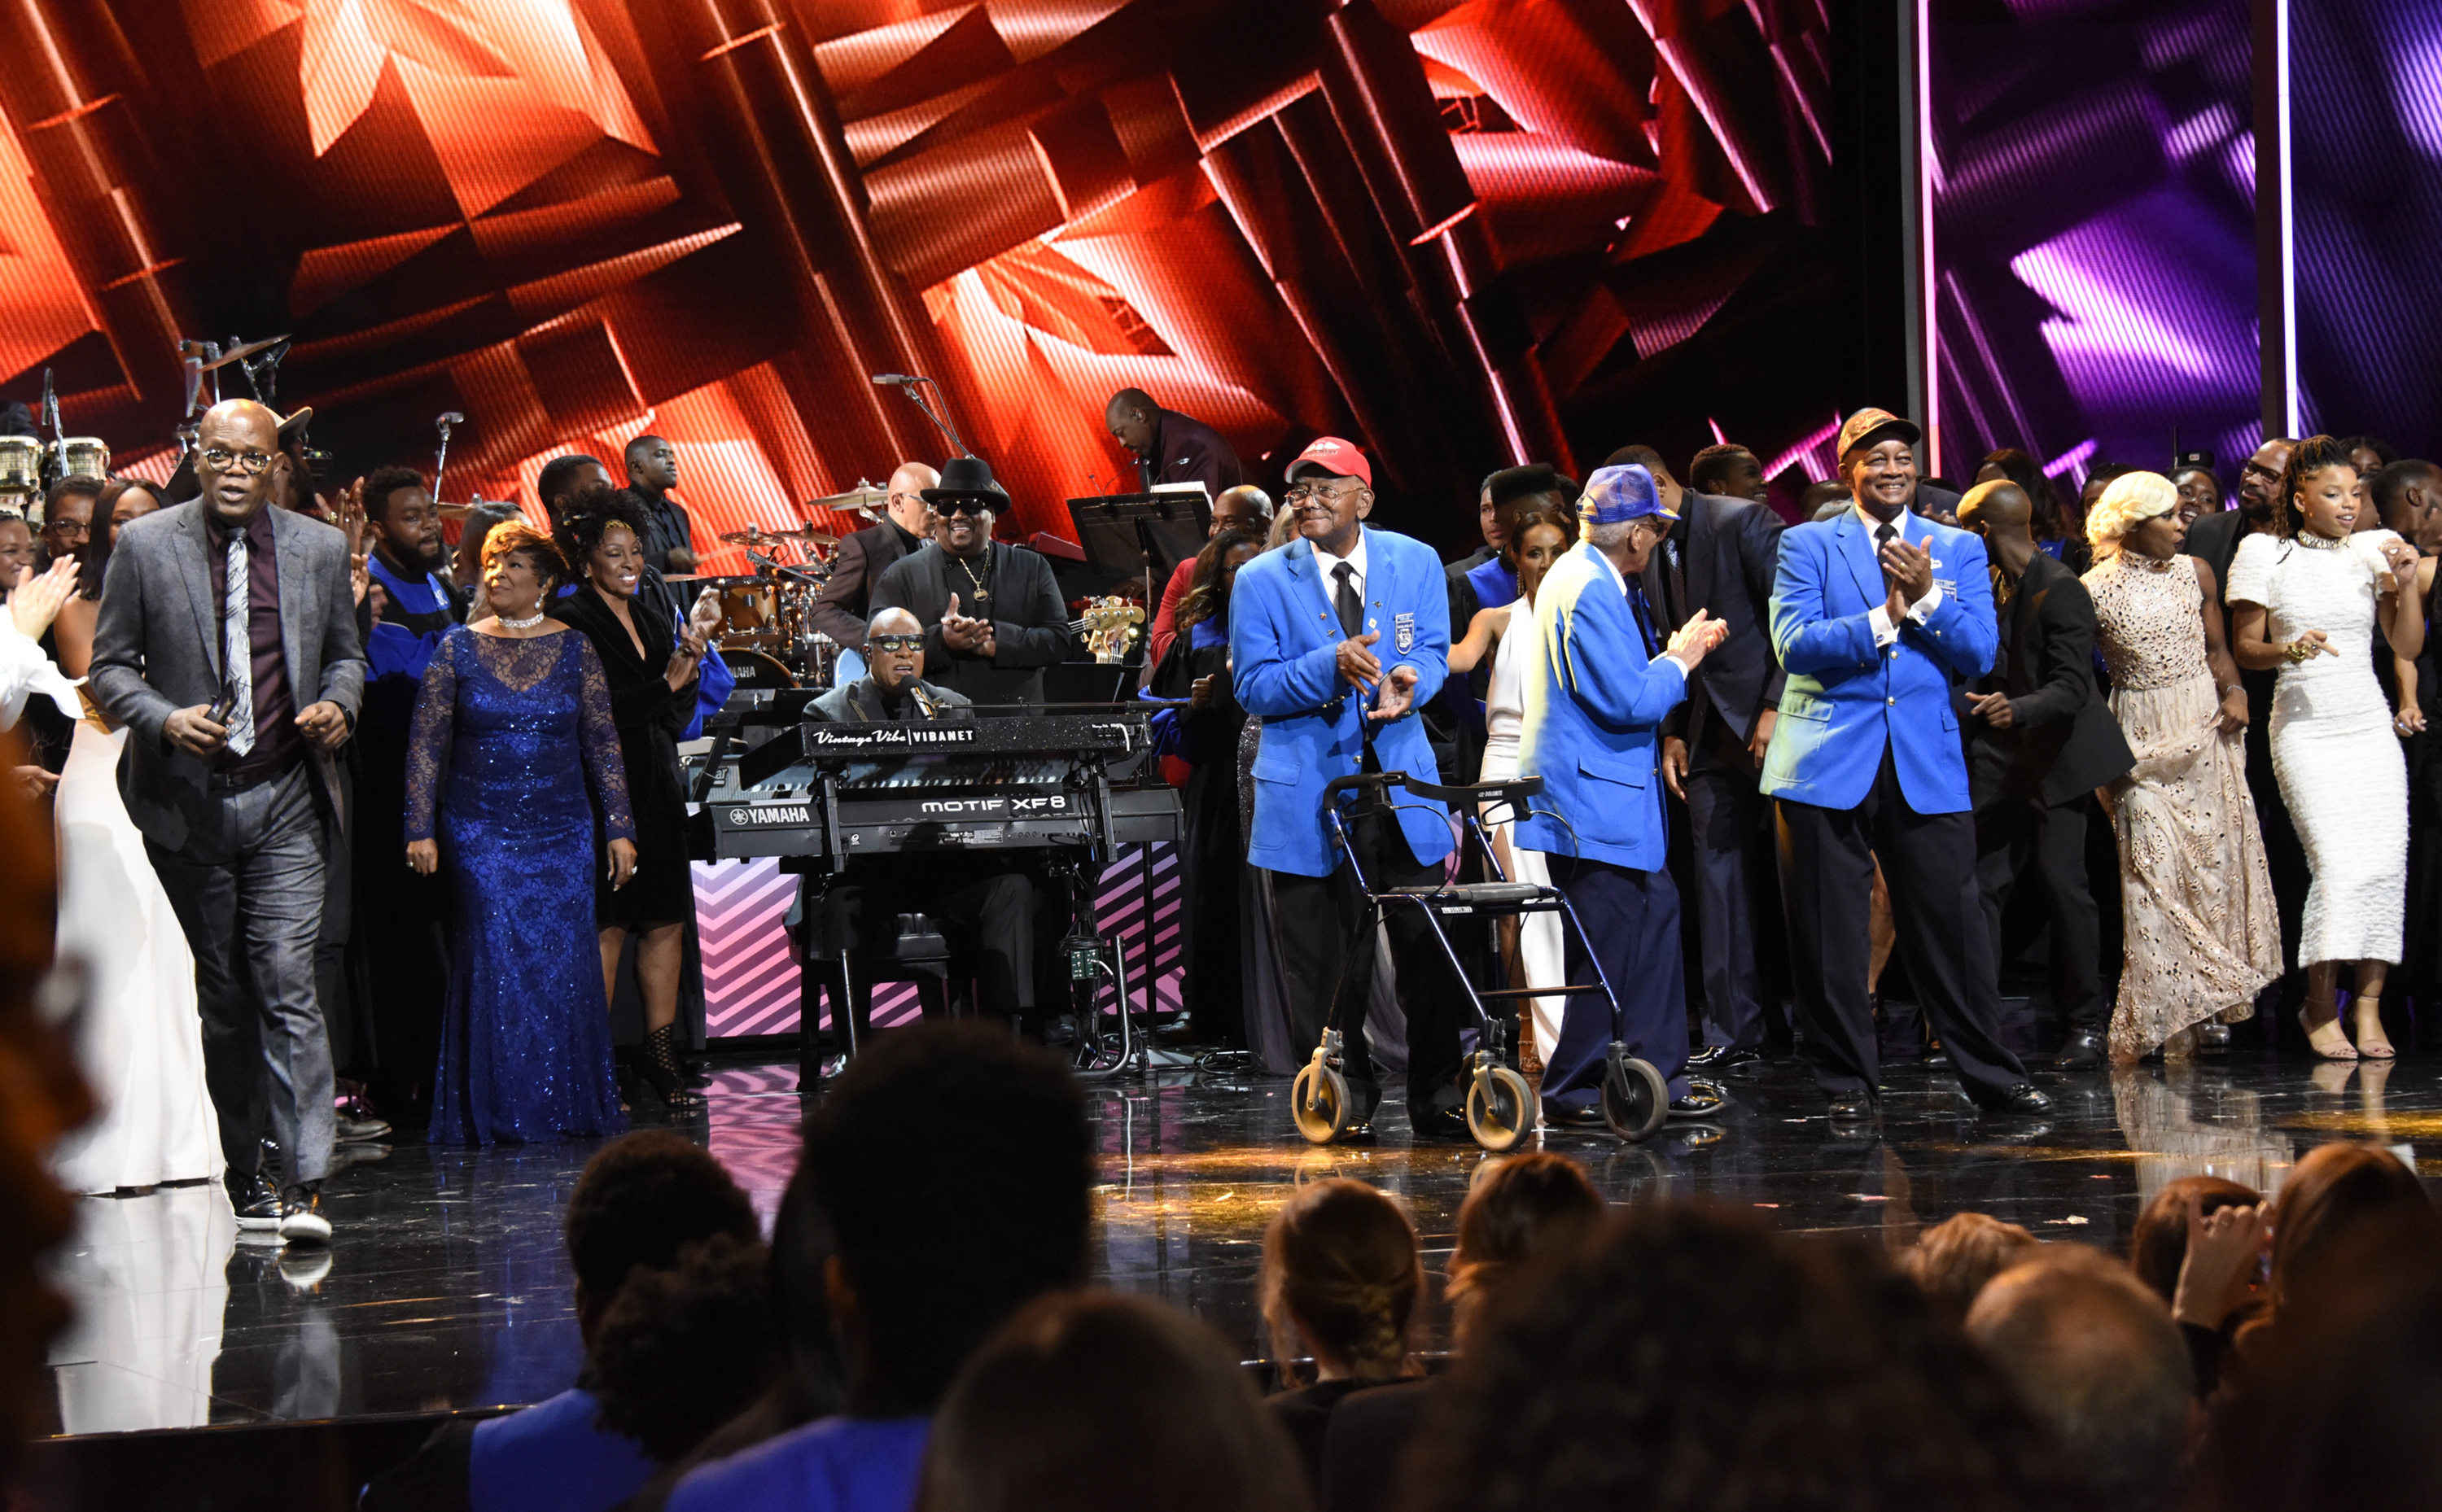 ABC Special - Taking The Stage: African American Music And Stories That Changed America: (Photo by ABC/ Ida Mae Astute) Samuel Jackson, Shirley Caesar, Gladys Knight, Stevie Wonder, Tuskegee Airmen, Cynthia Erivo